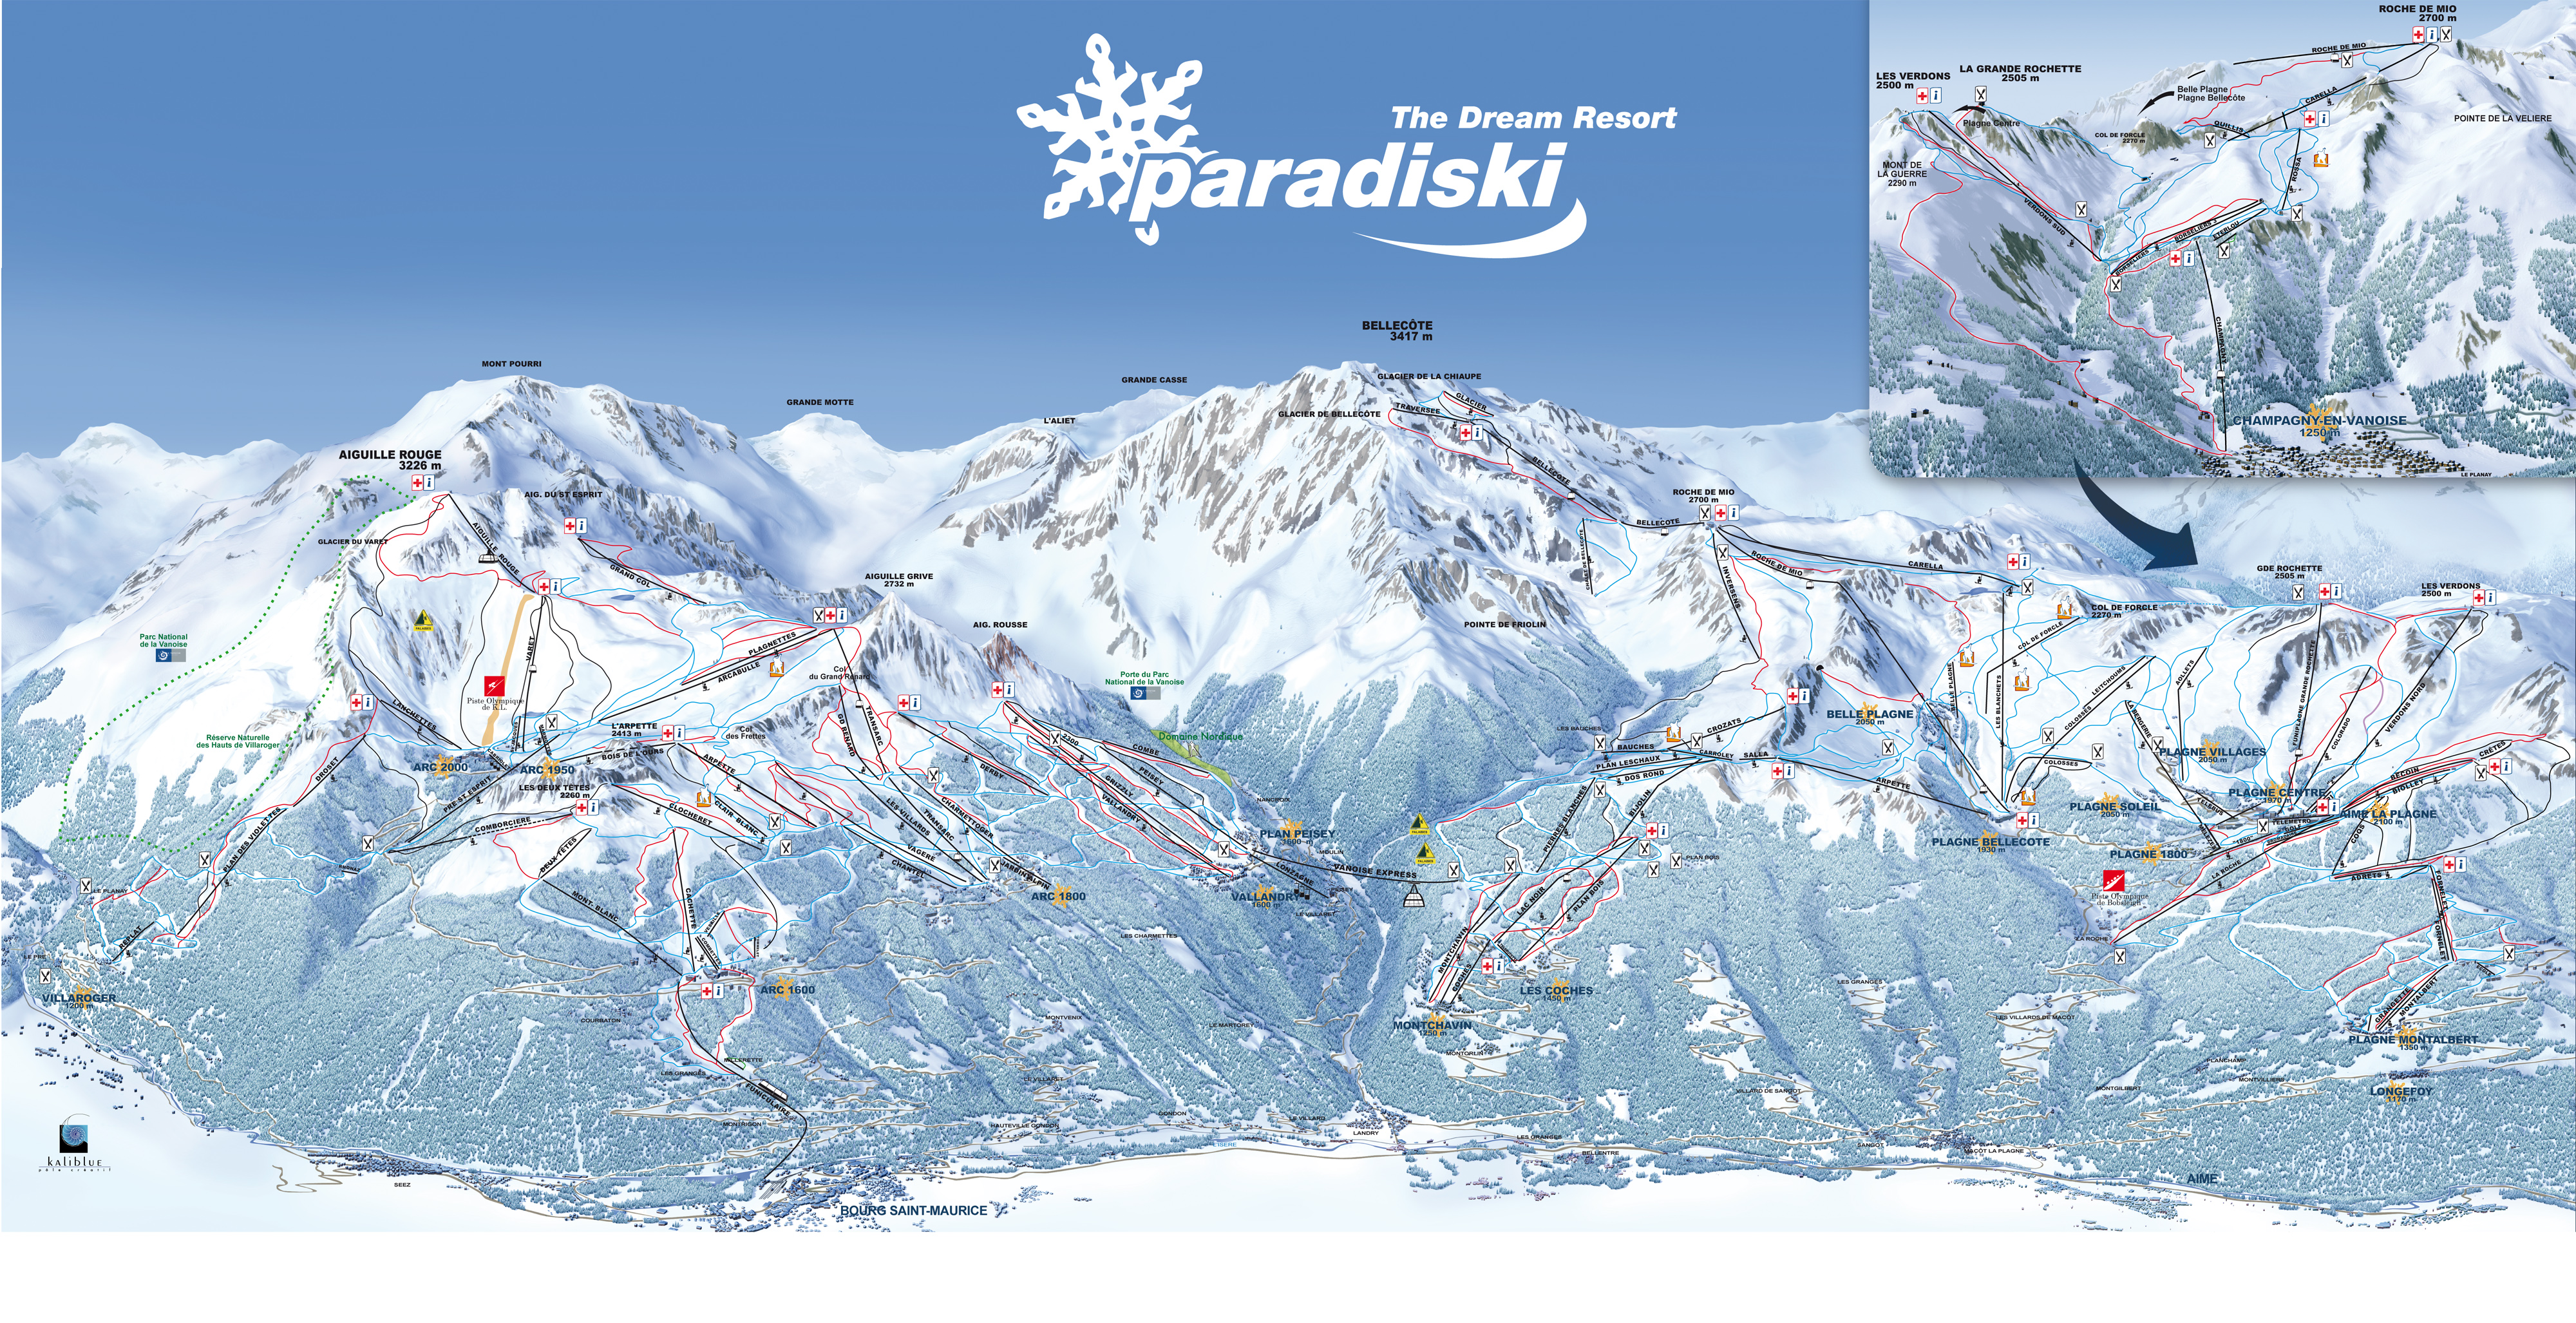 LA PLAGNE MAP 0 open ski lift WinterSportscom